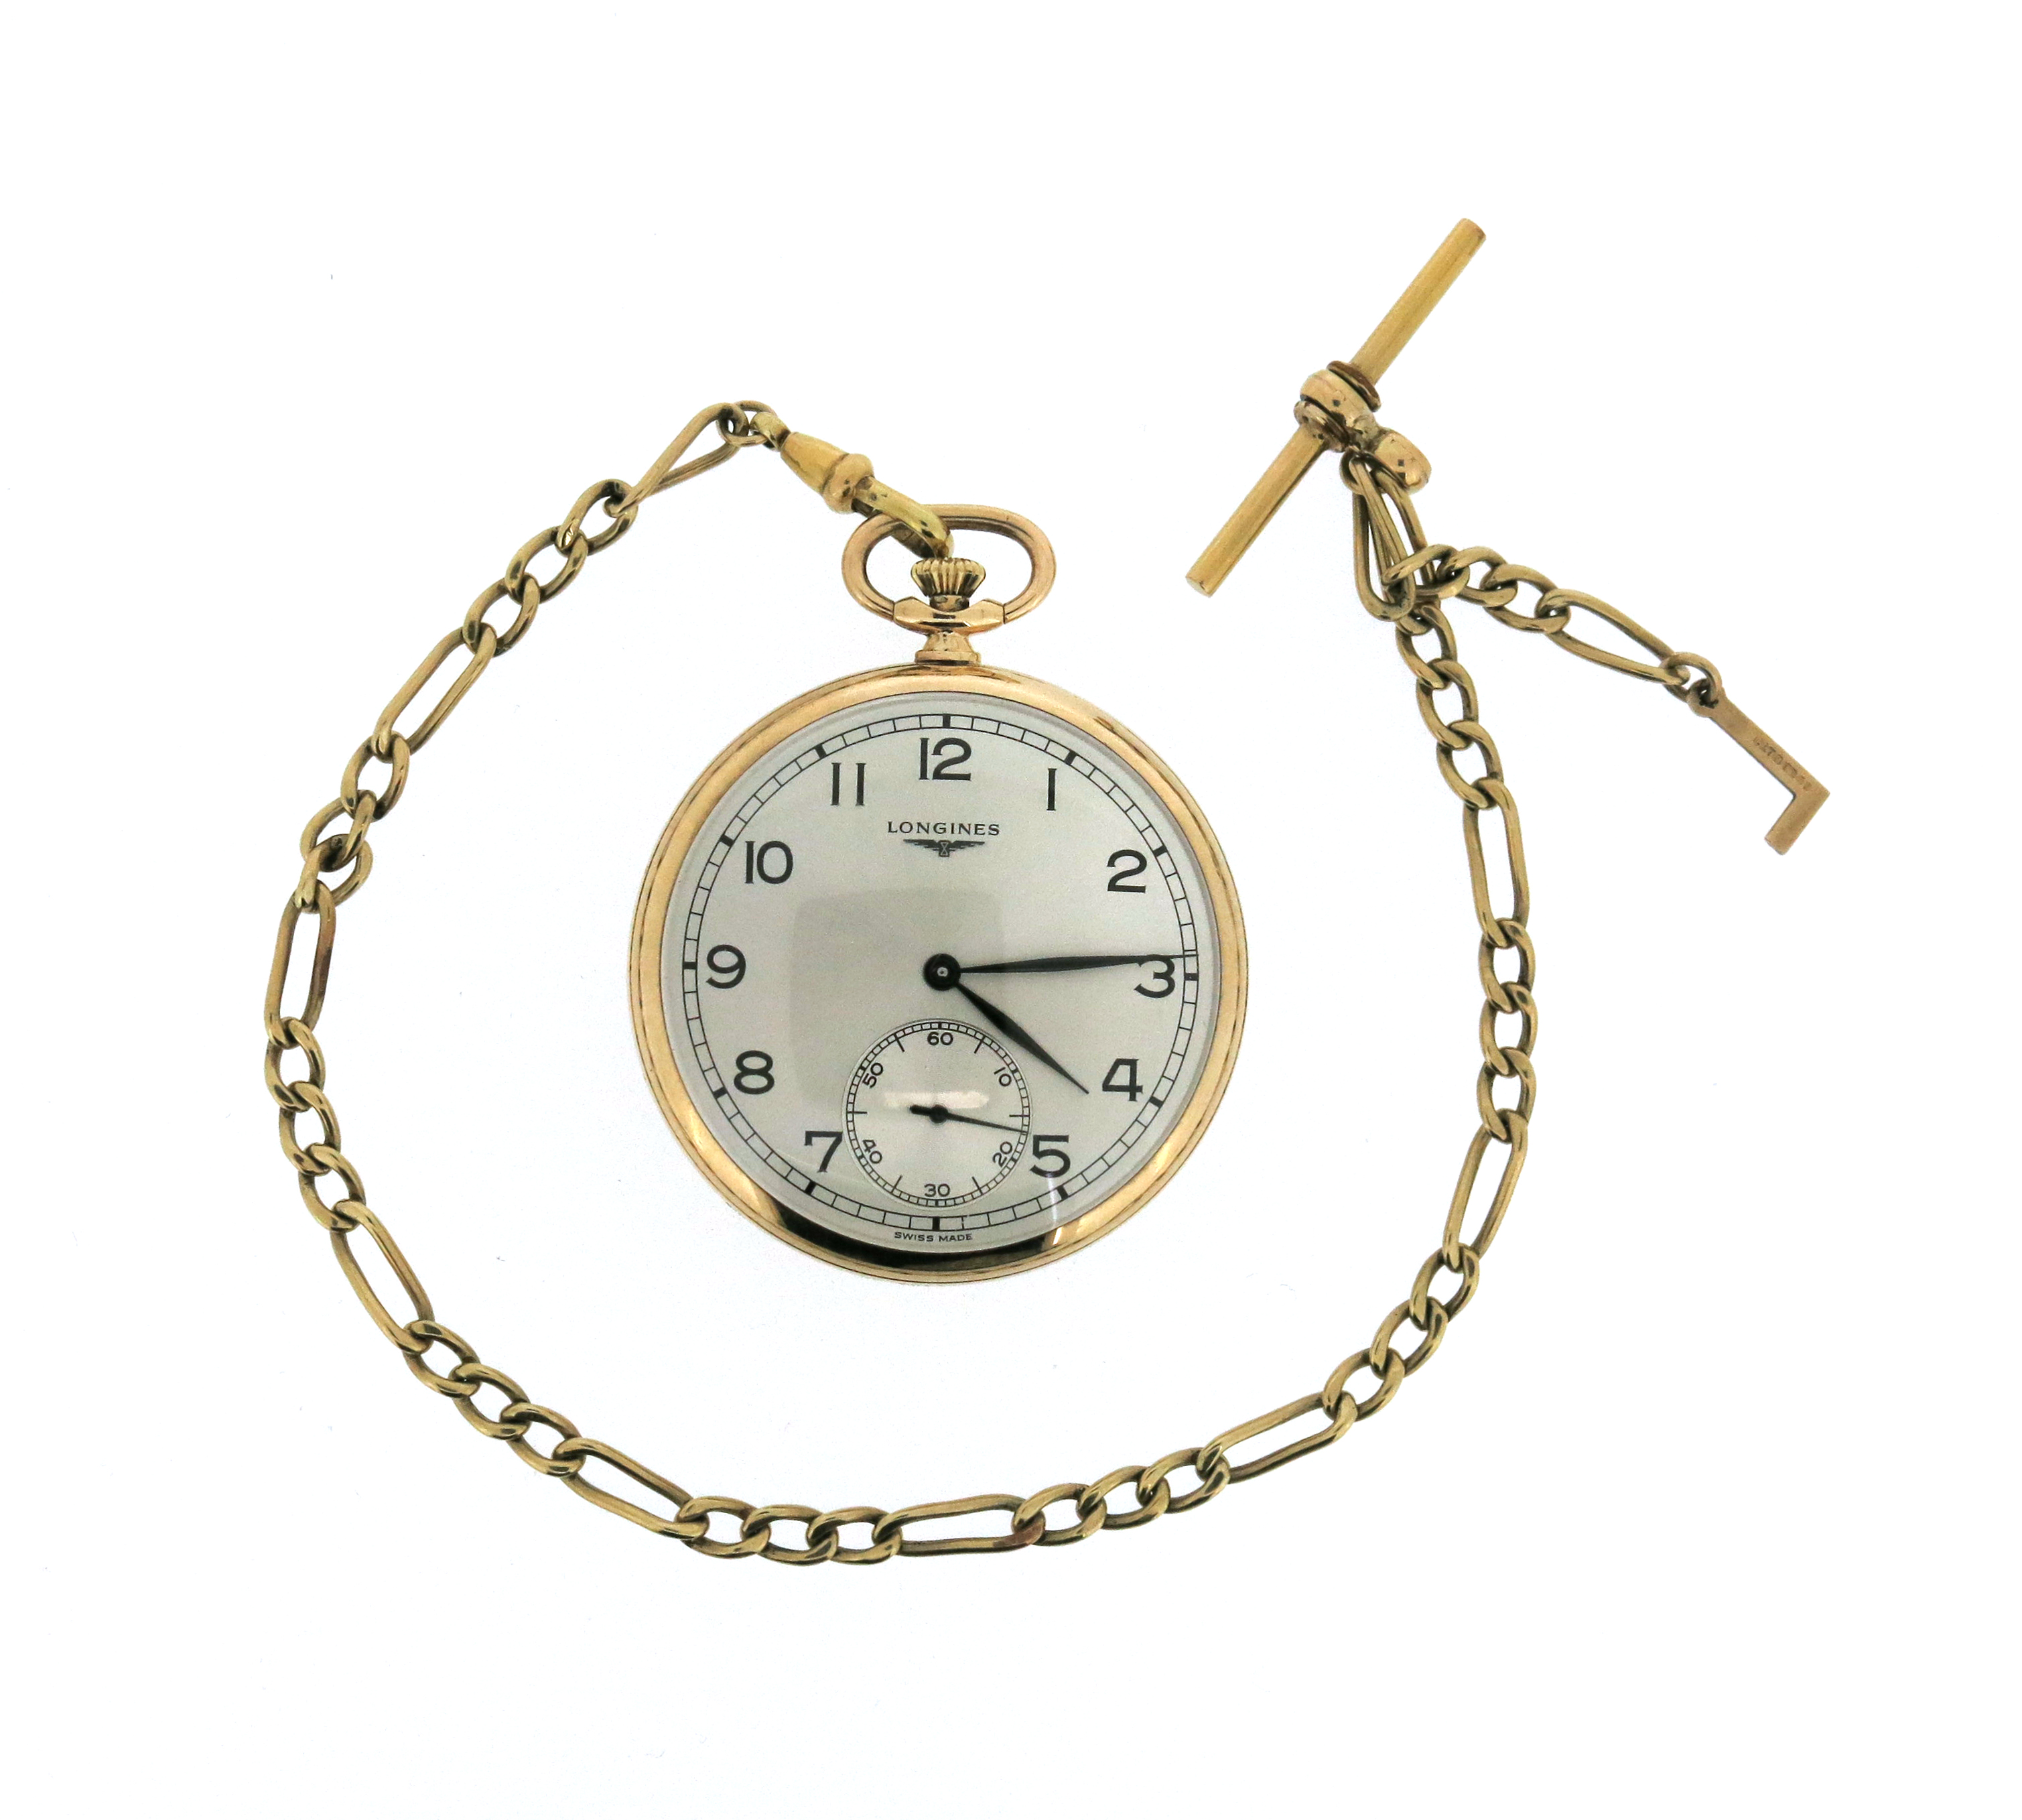 A 9ct gold open-faced pocket watch by Longines